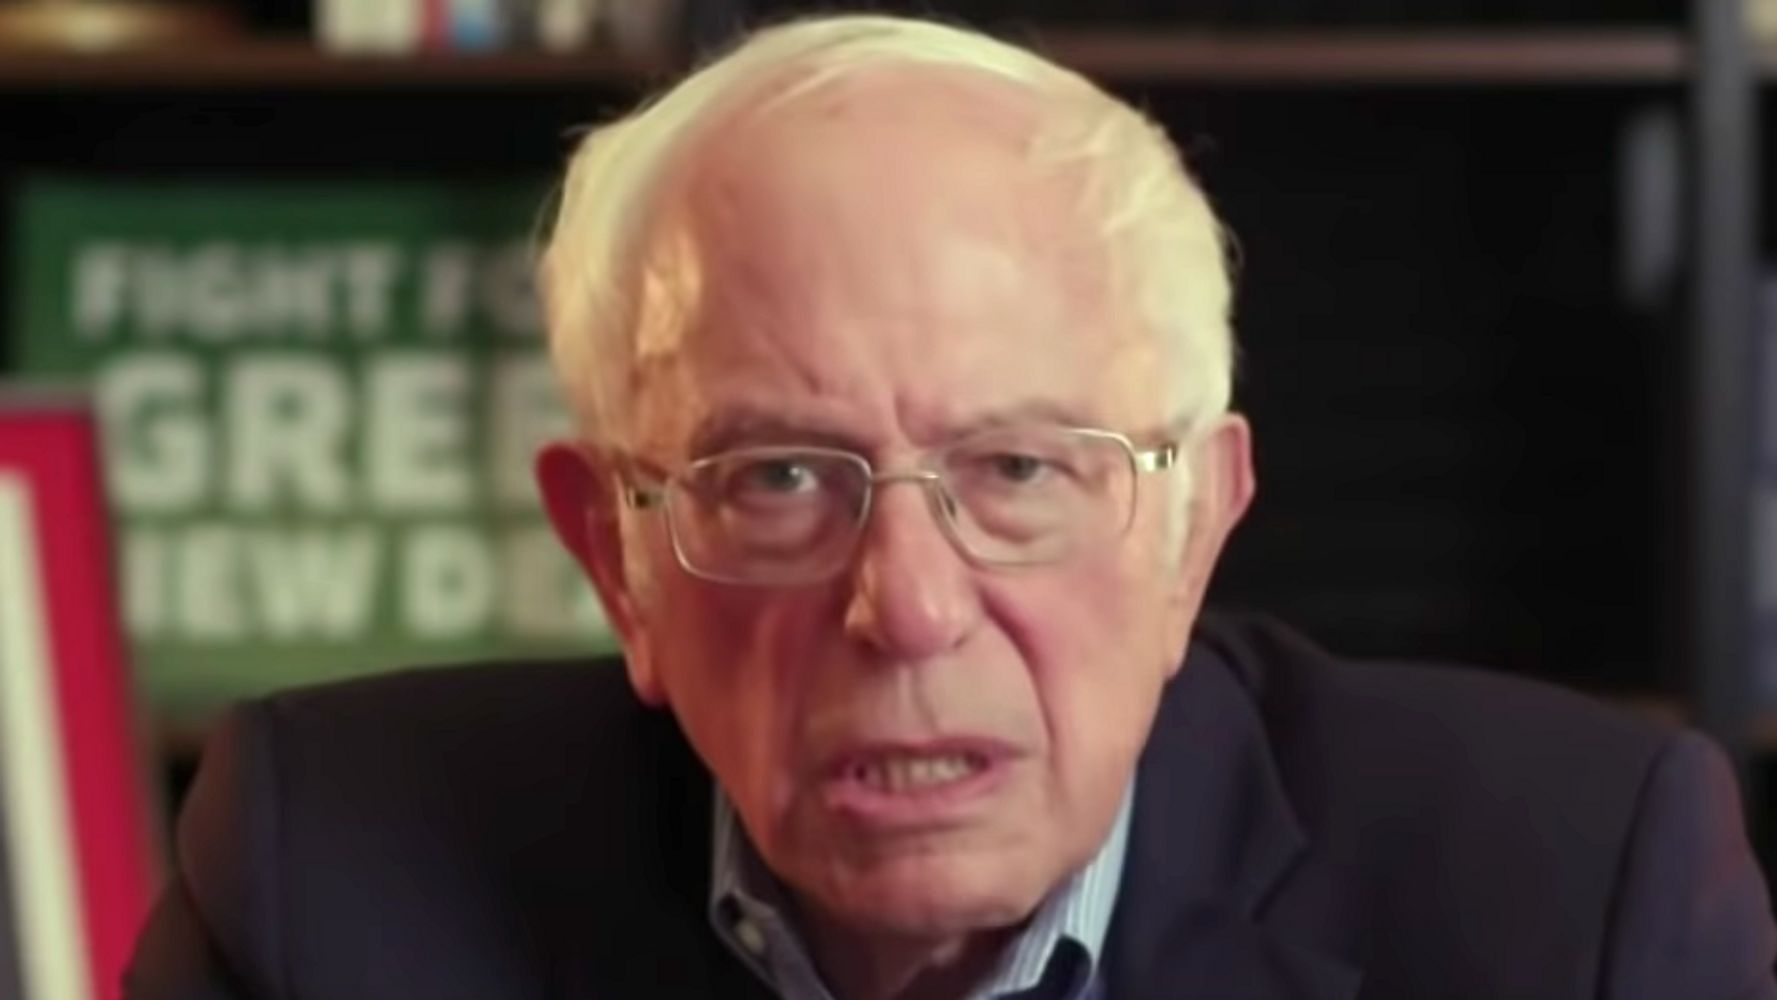 Bernie Sanders' Accurate Prediction Of Donald Trump's Election Night Playbook Goes Viral